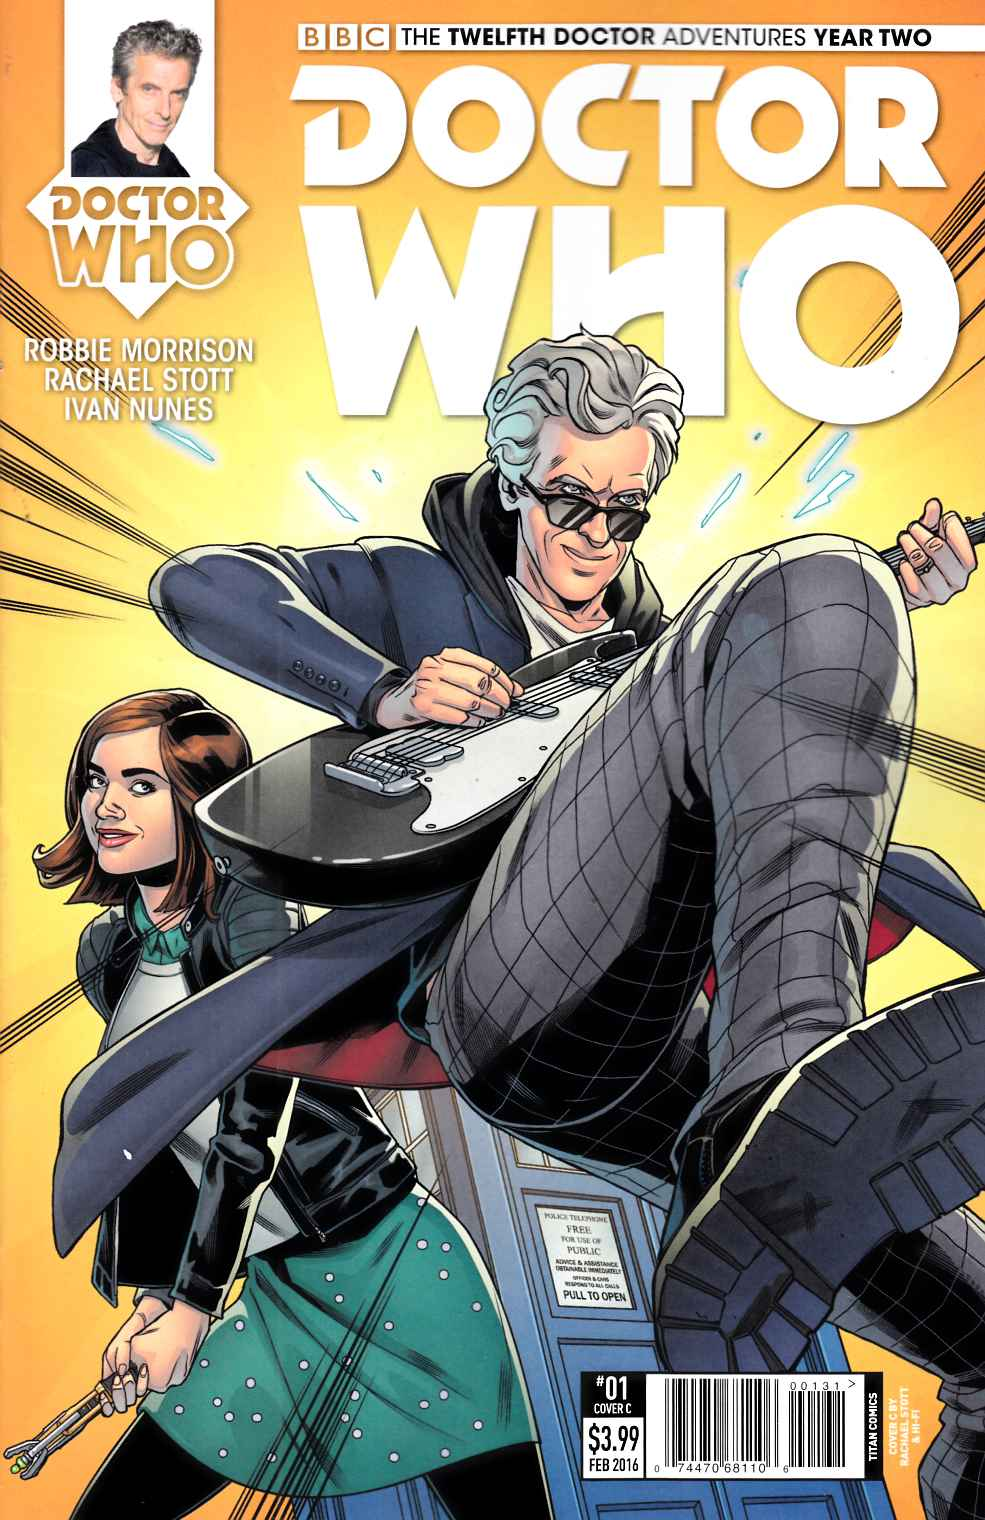 Doctor Who 12th Doctor Year 2 #1 Stott Variant Cover [Titan Comic] THUMBNAIL